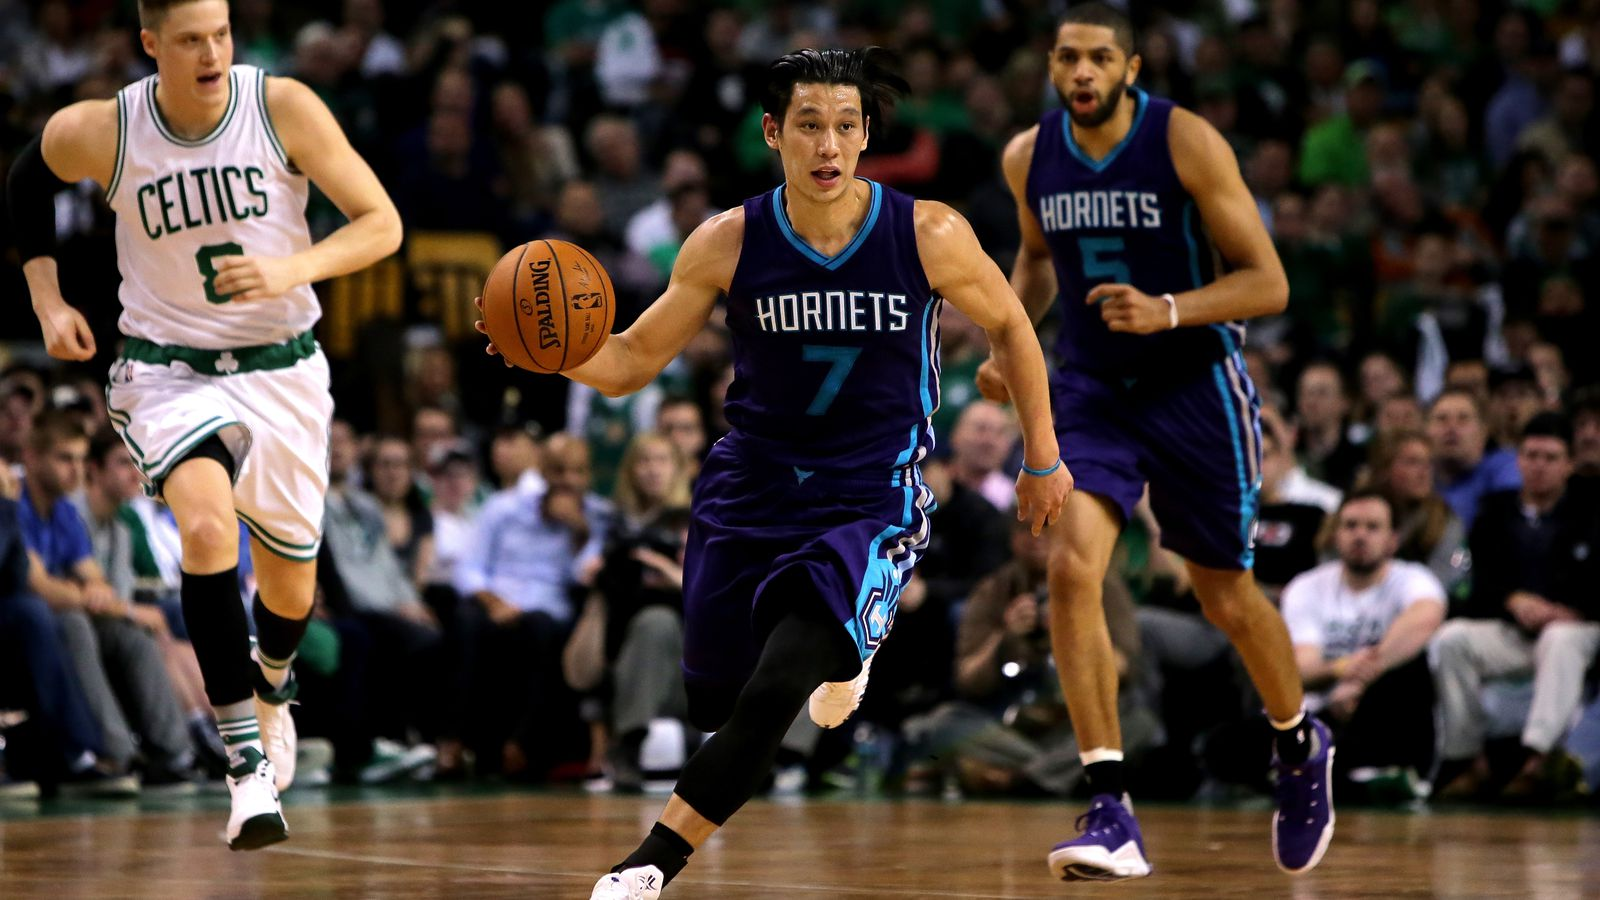 Jeremy Lin bolsters 6th Man of the year campaign as Hornets send Celtics reeling